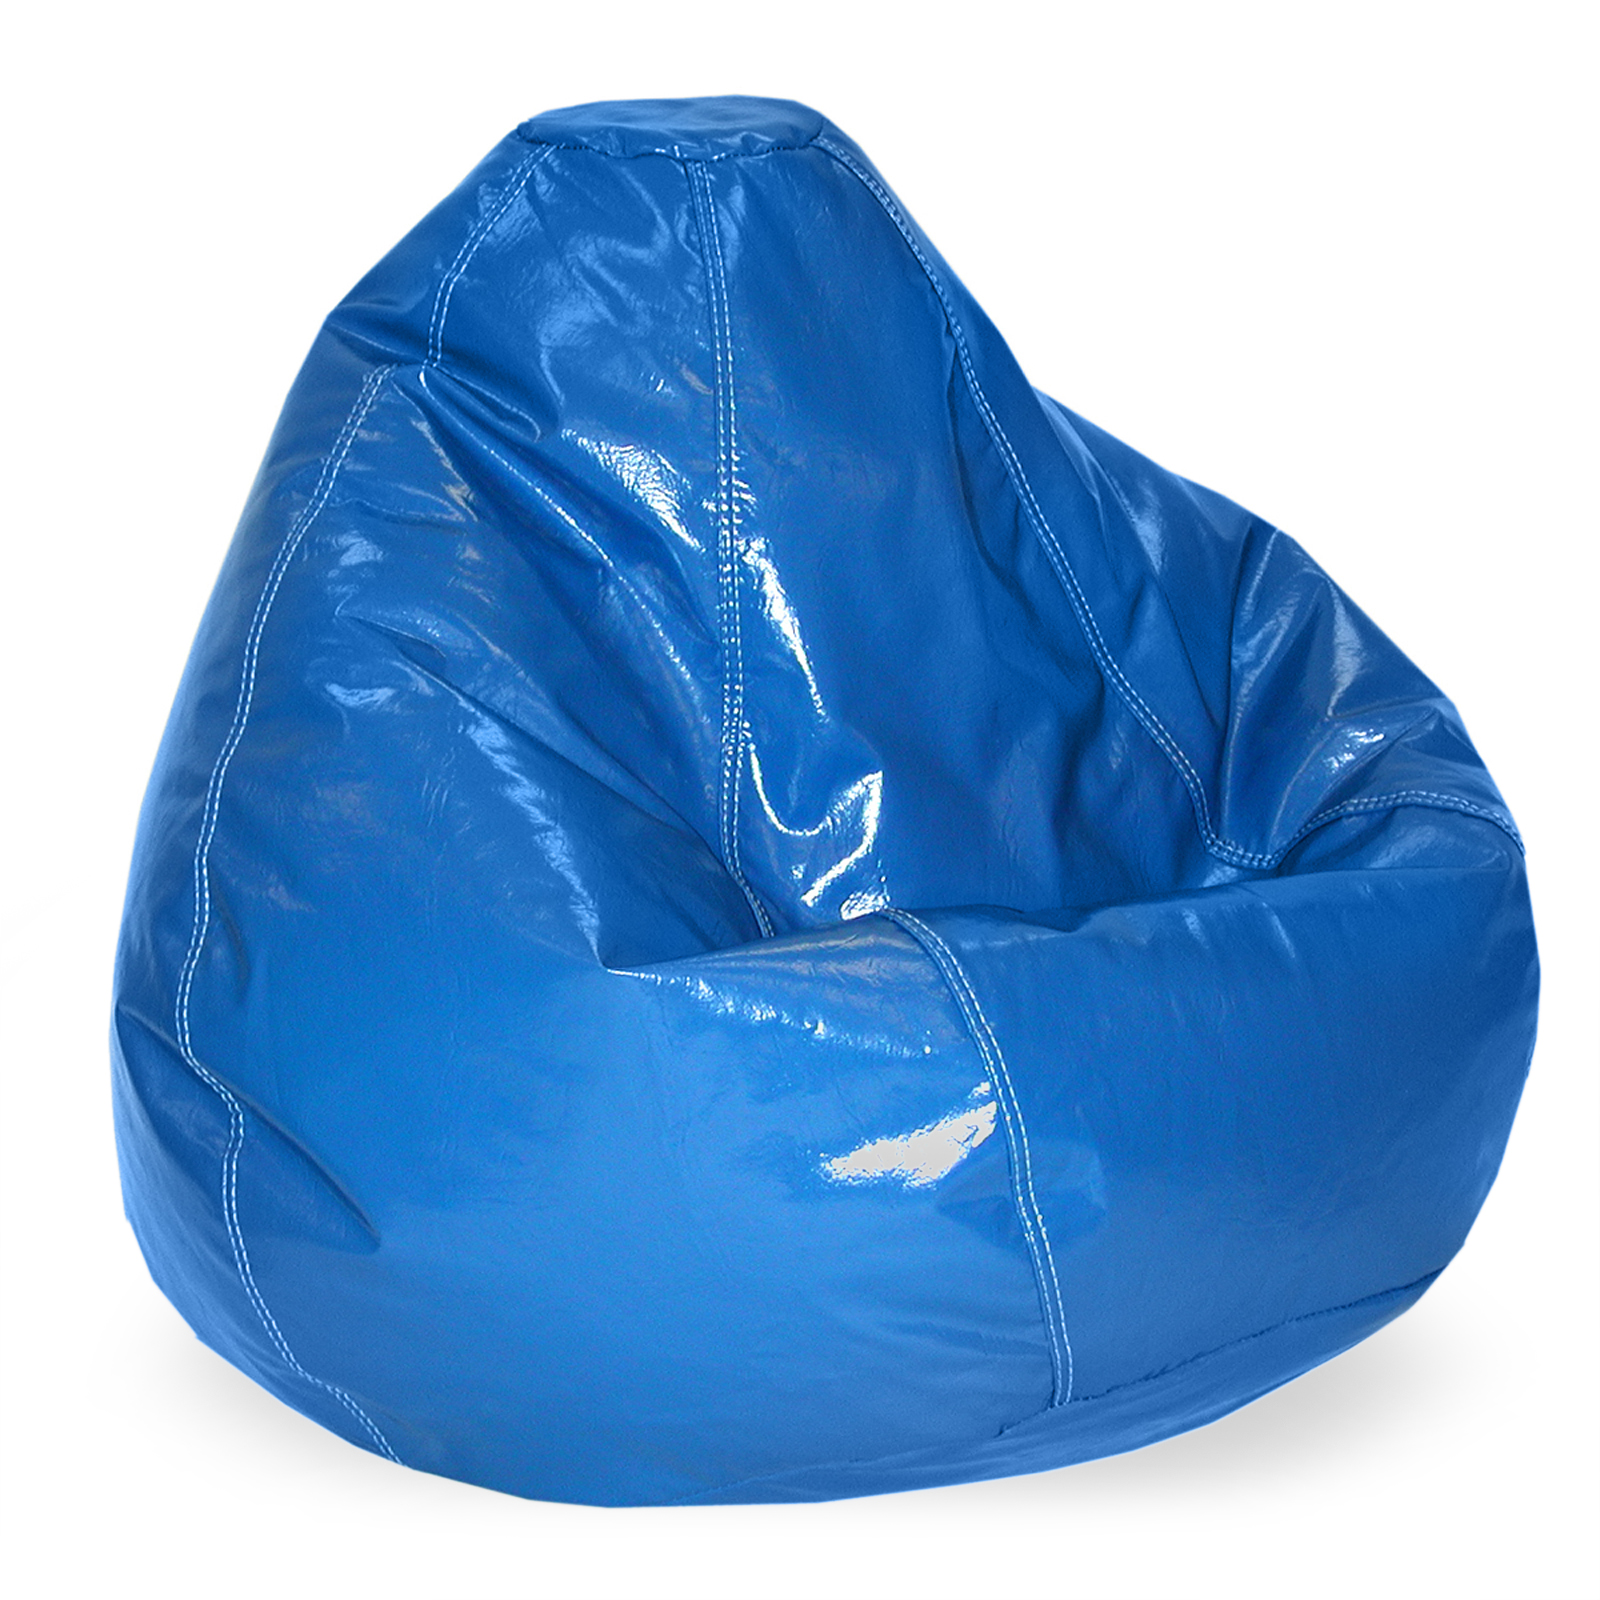 blue bean bag chairs mini high chair kids classic bags and pillow loungers